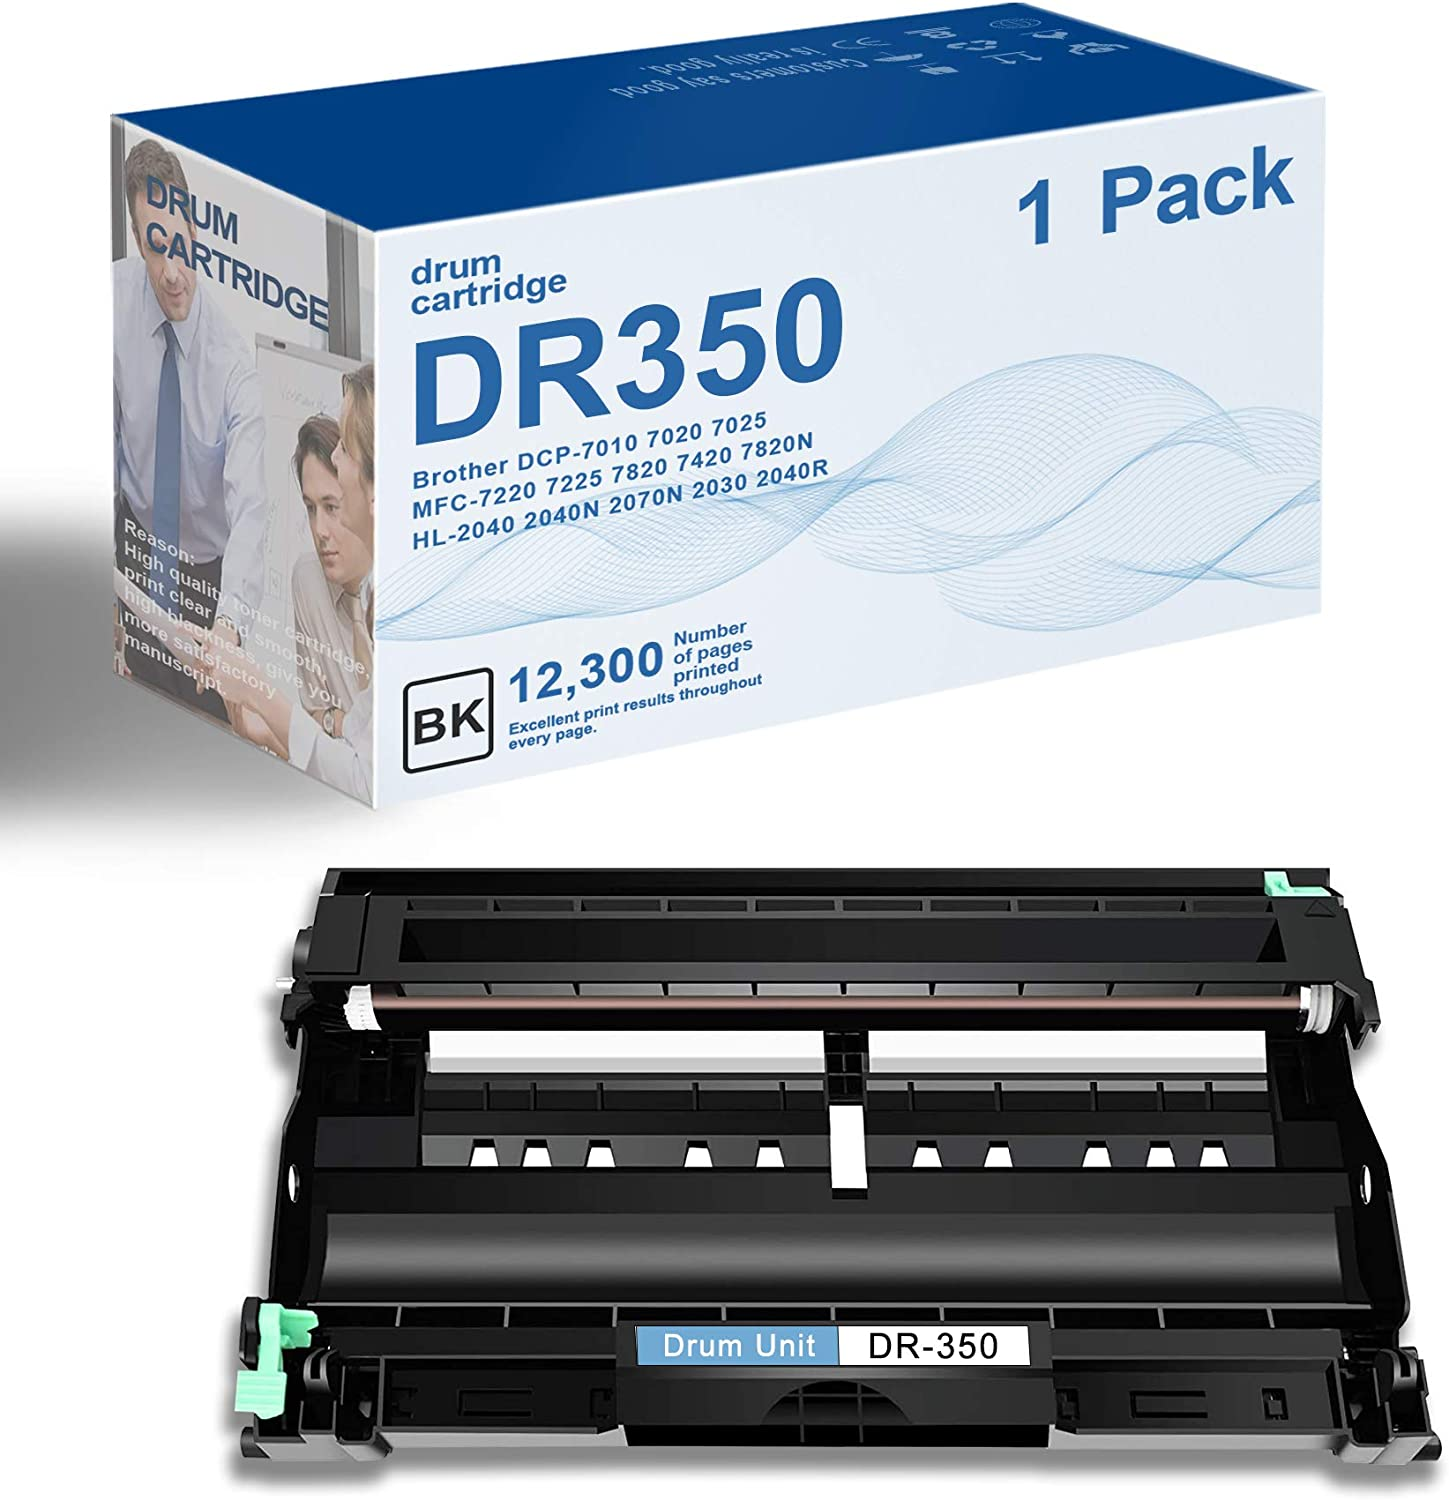 1 Pack Black DR350 Compatible Drum Unit Replacement for Brother-7020 7010 IntelliFax-2820 2850 MFC-7225 7420 7820N HL-2040 2070N 2040R 2040N 2030 Printer Drum Unit,High Page Yield Up to 12,300 Pages